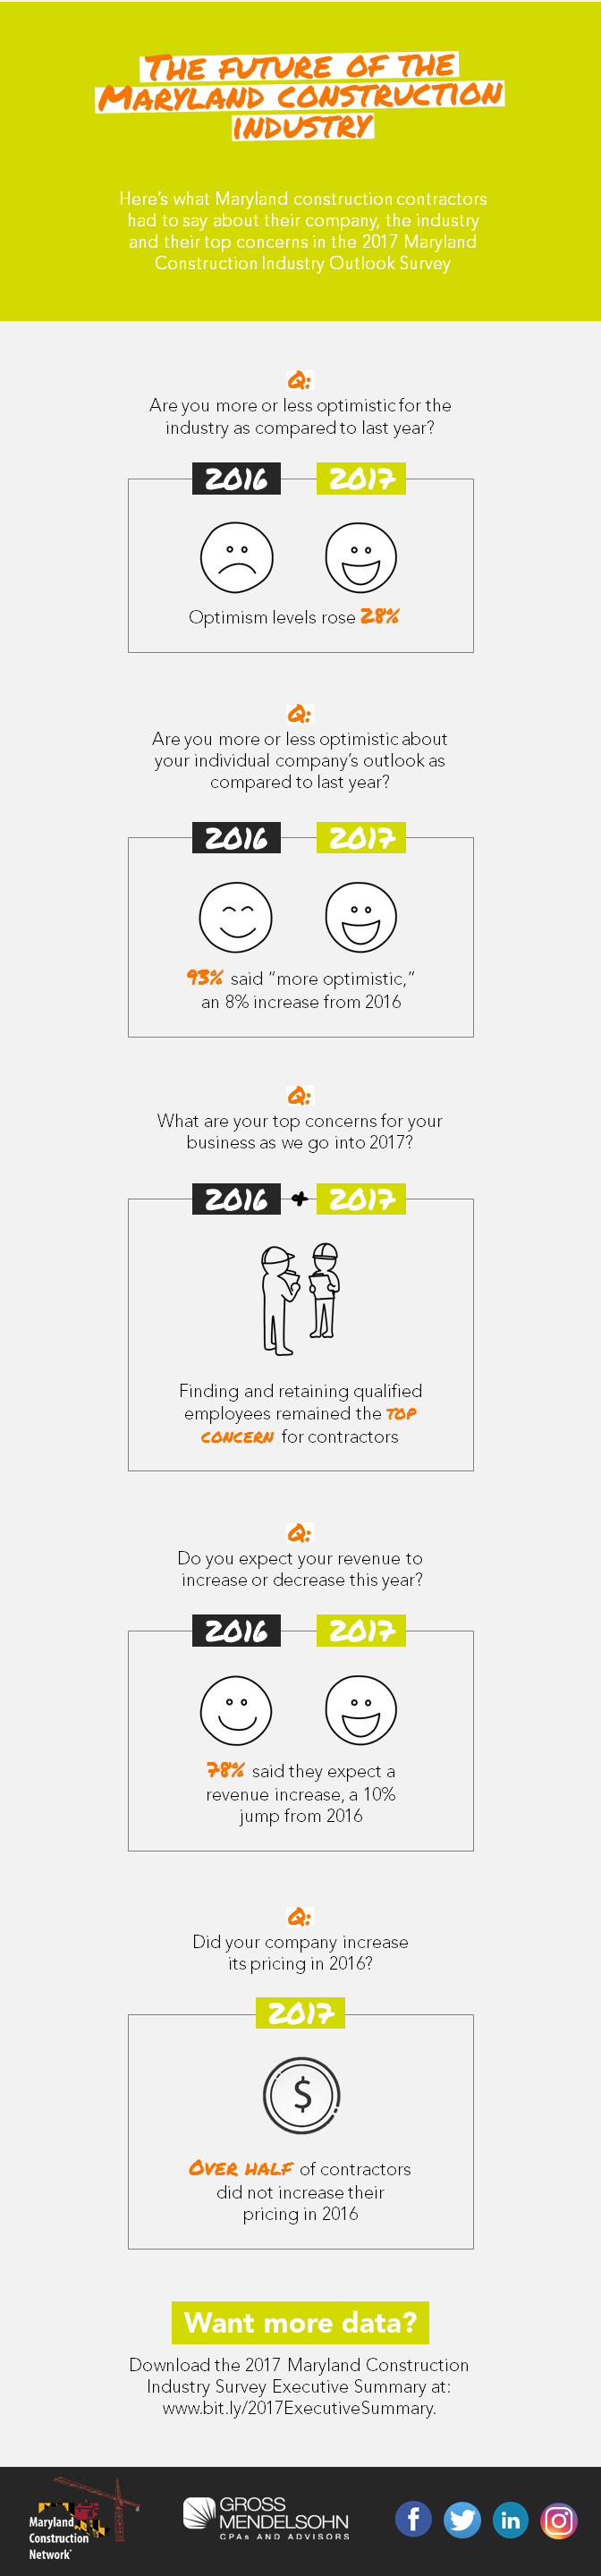 2017-Maryland-Construction-Industry-Future-Infographic